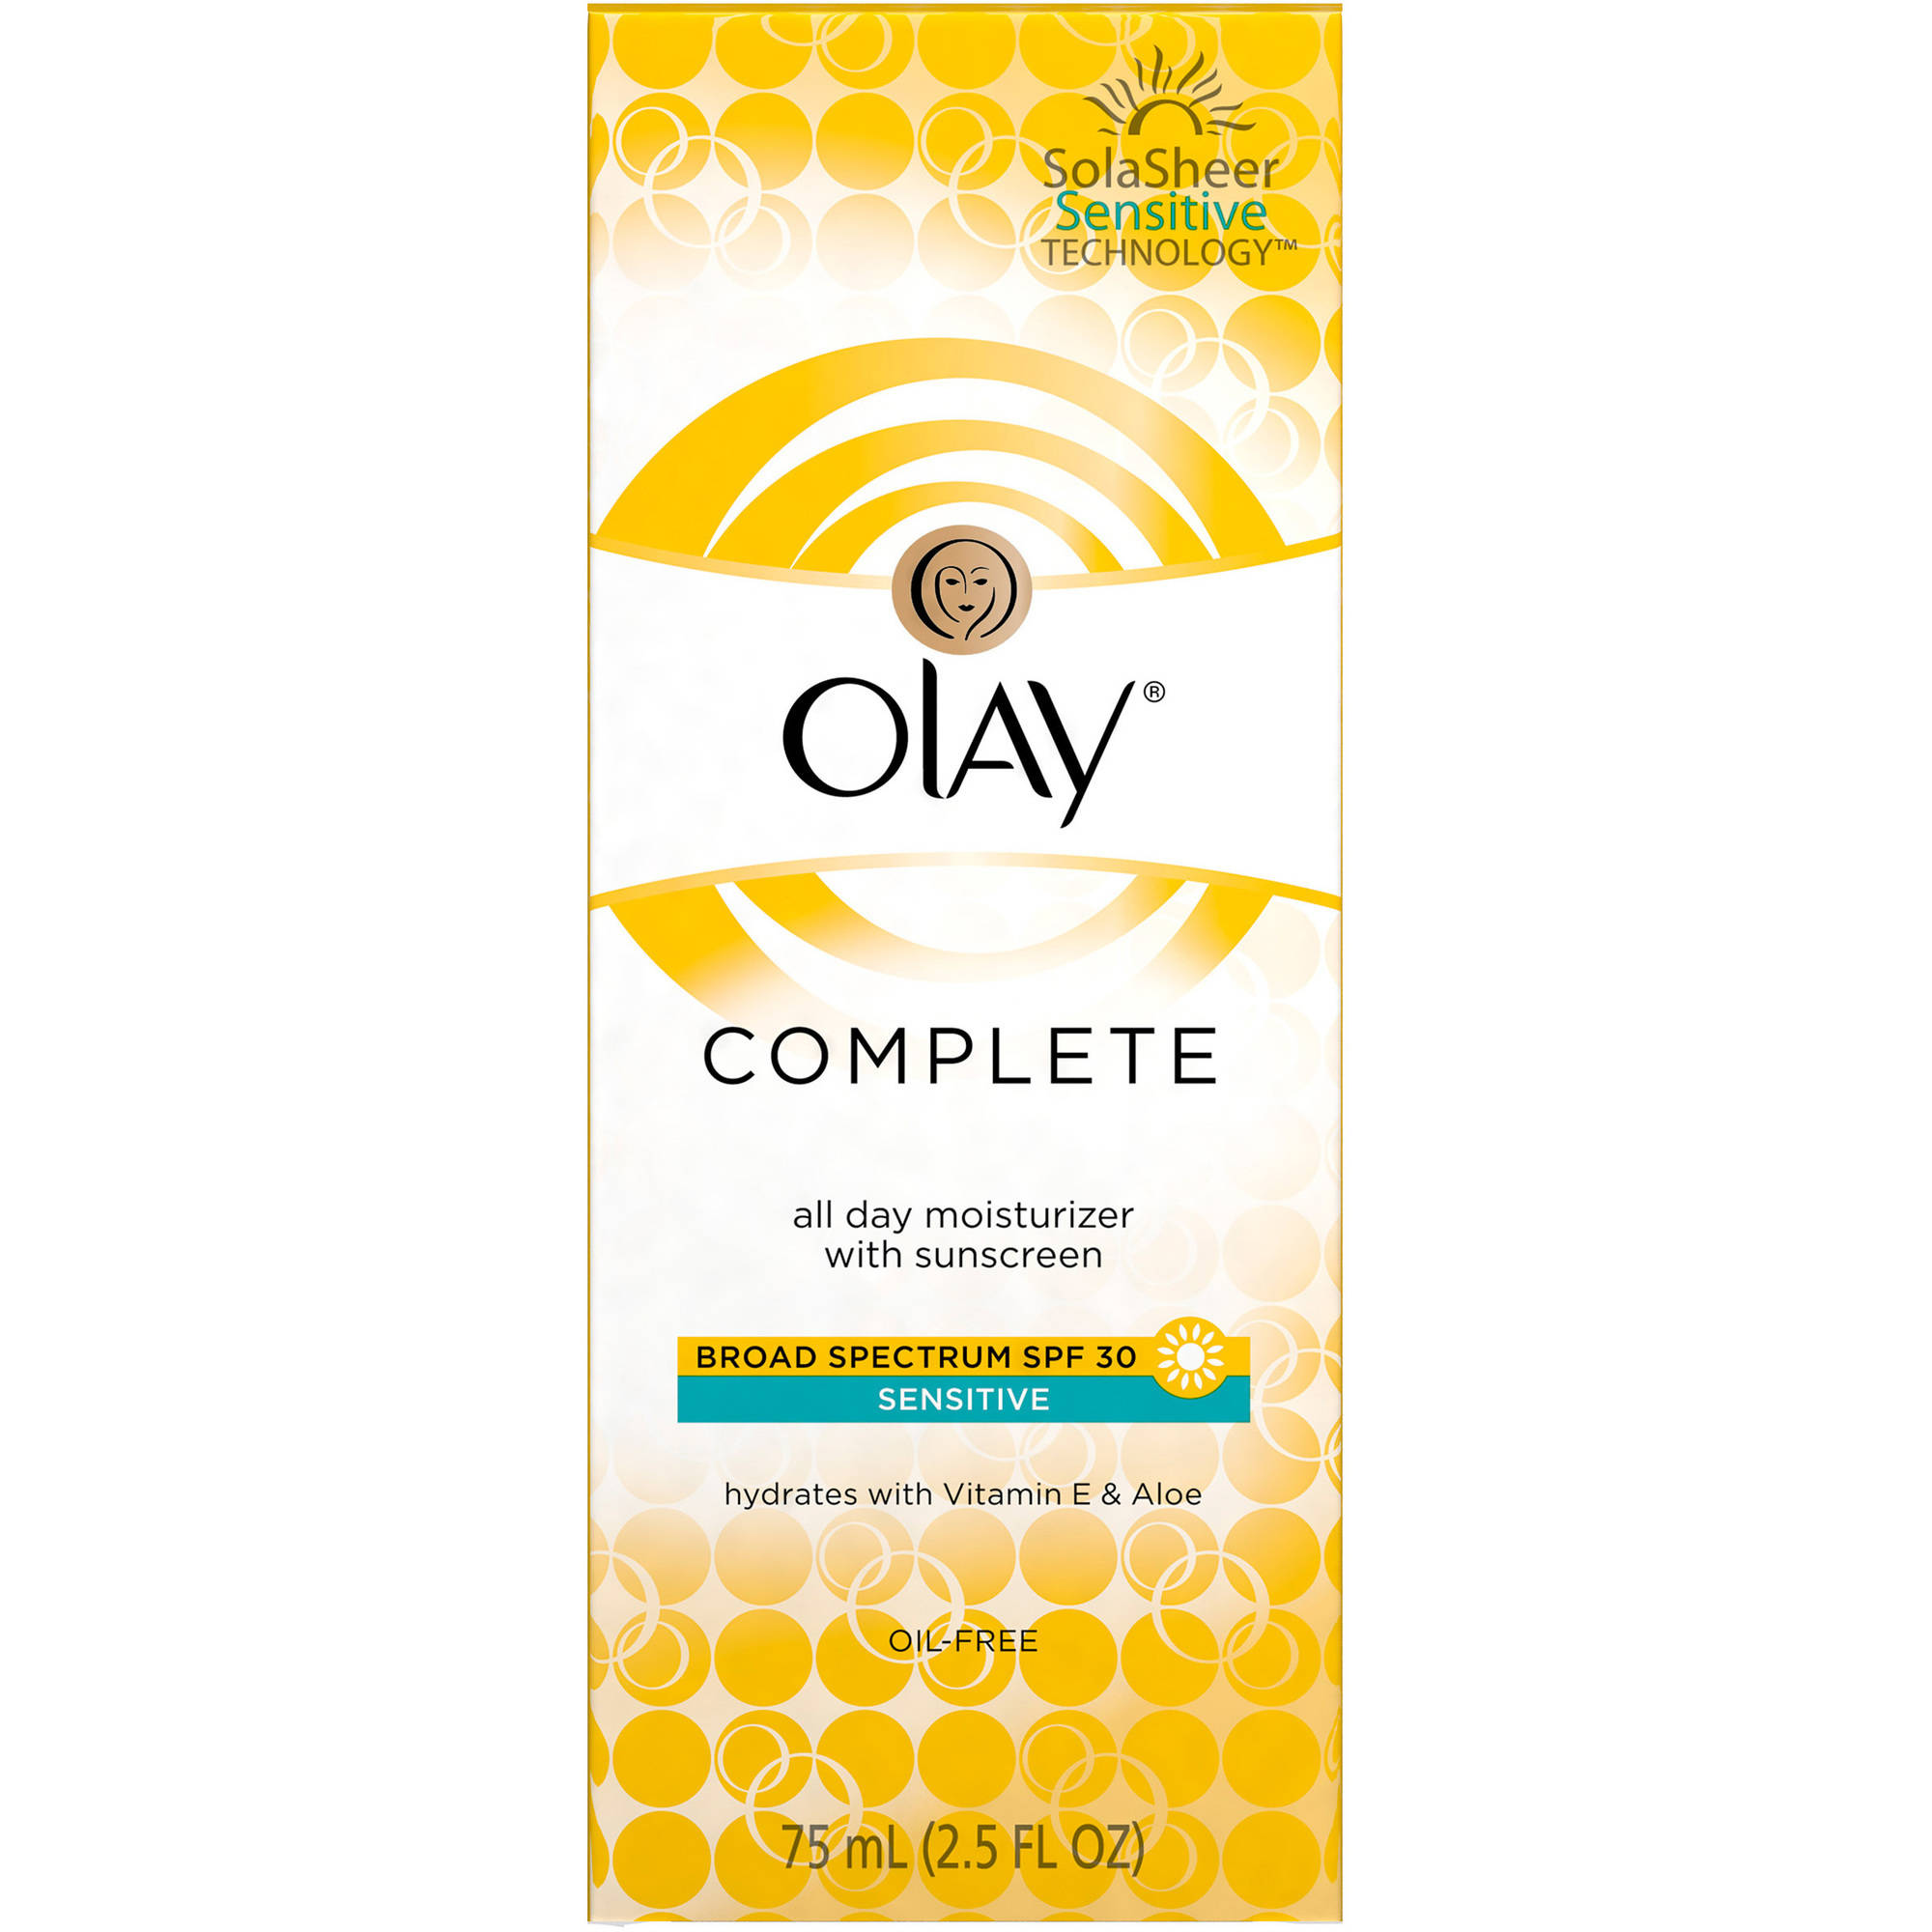 Olay Complete All Day Facial Moisturizer with Broad Spectrum SPF 30 - Sensitive, 2.5 fl oz